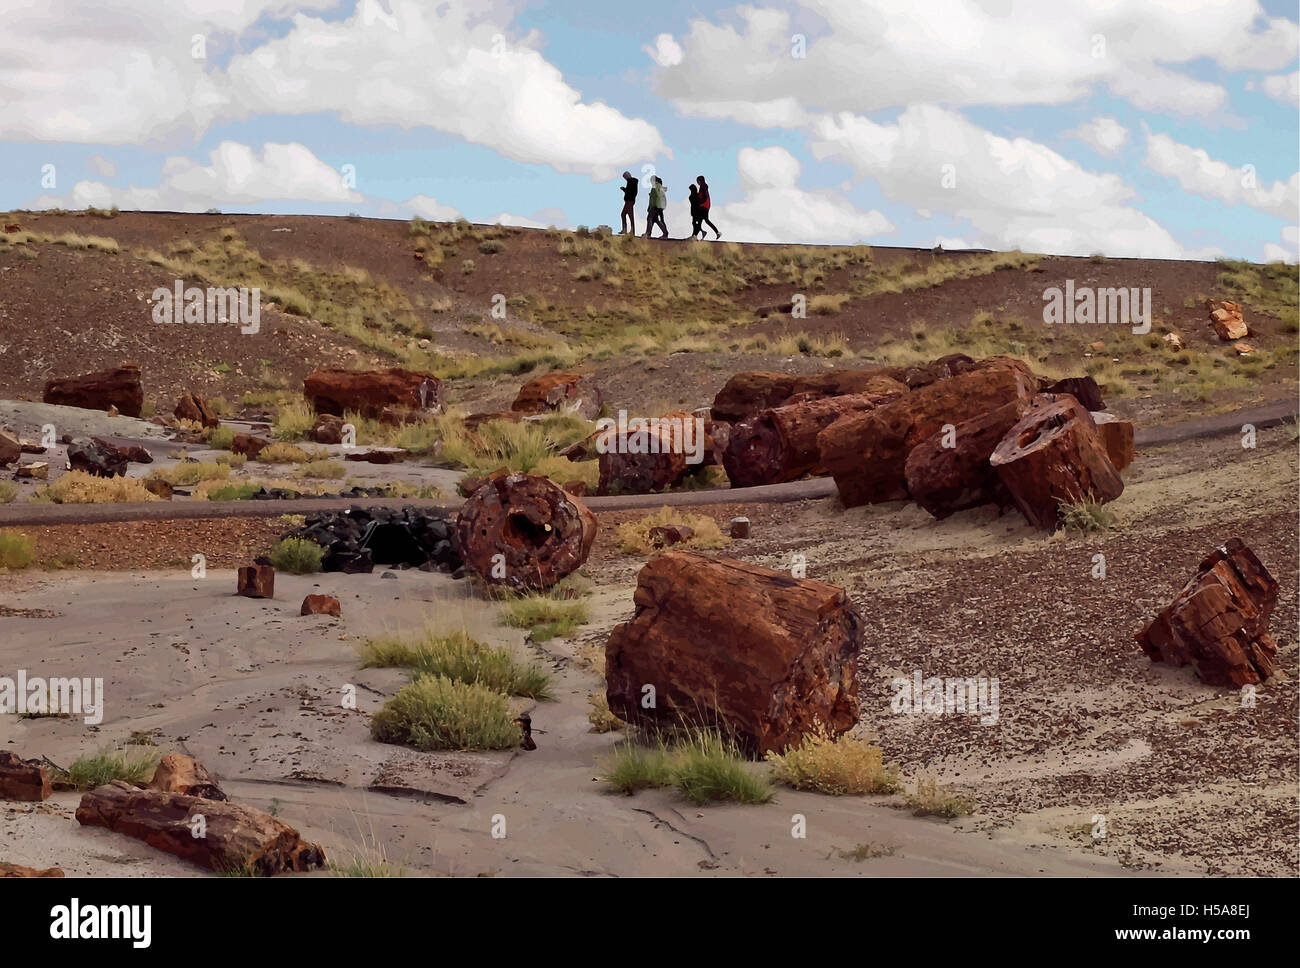 People walking  in Petrified Forest National Park in Arizona. Digitally adjusted. - Stock Image